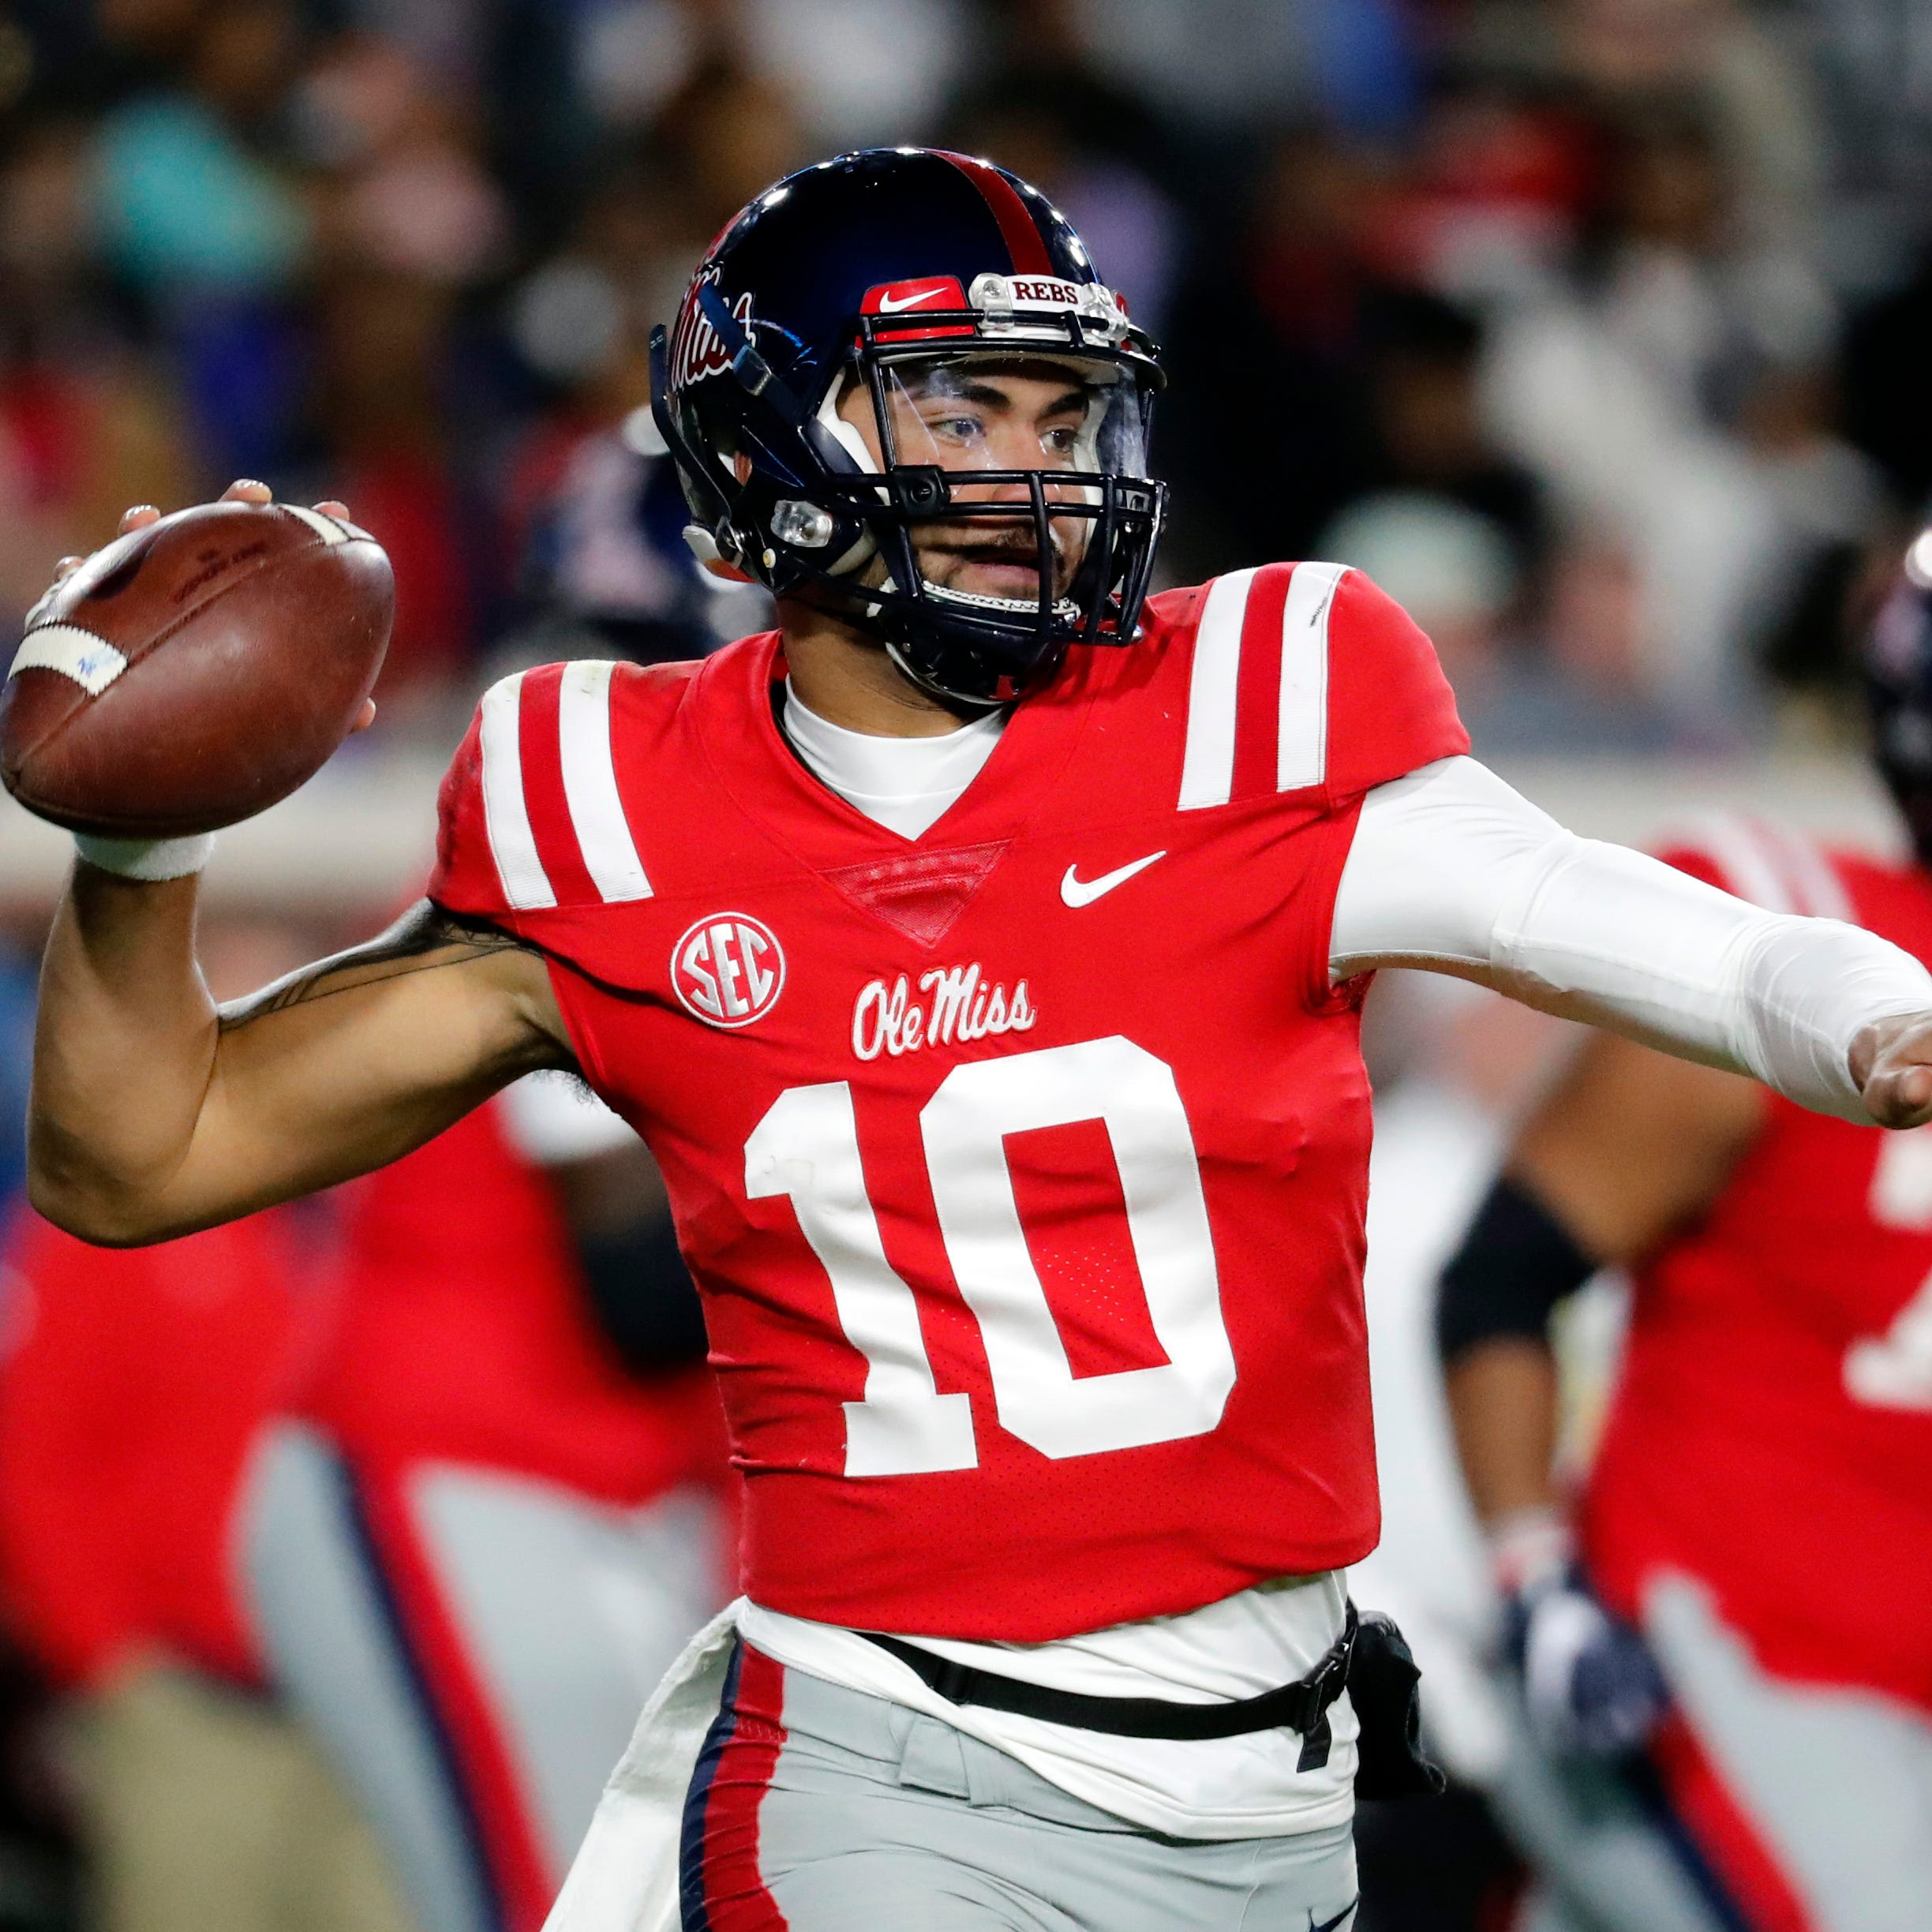 Ole Miss QB and NFL Draft prospect Jordan Ta'amu: 'I know I'm better than people say I am'